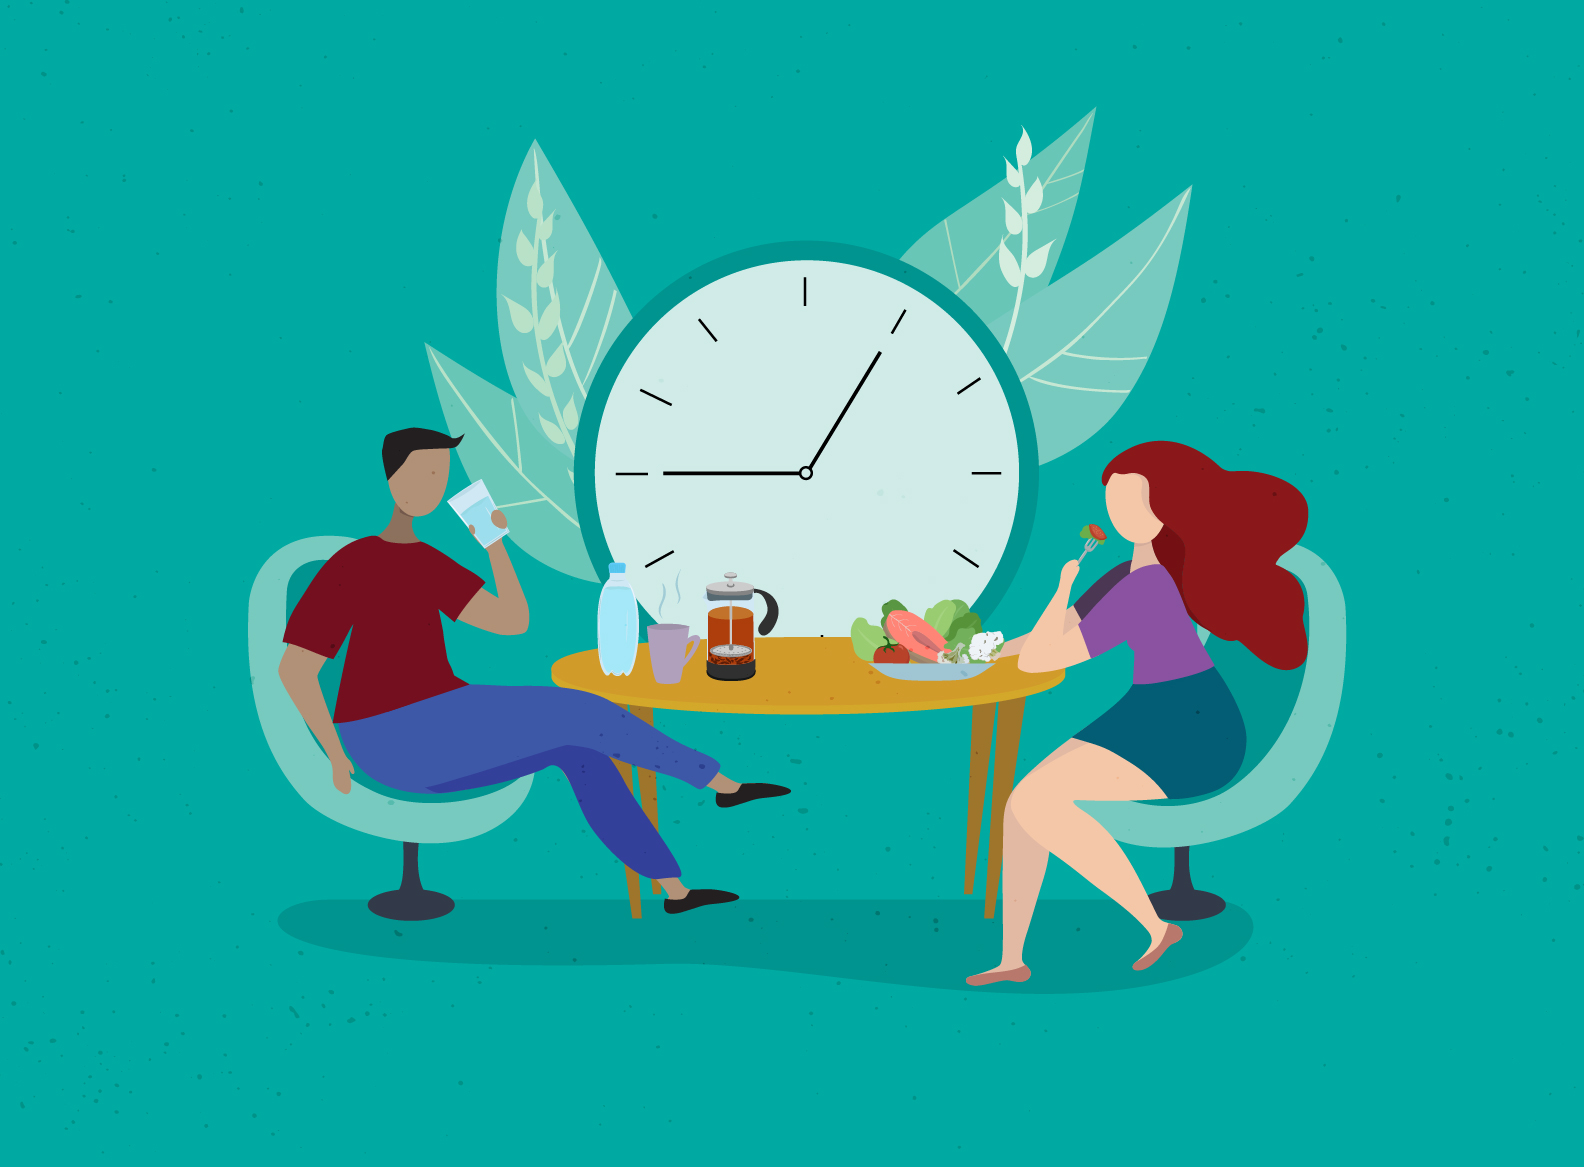 illustration of a man and woman at a table, man with empty plate and woman with full. Clock behind them